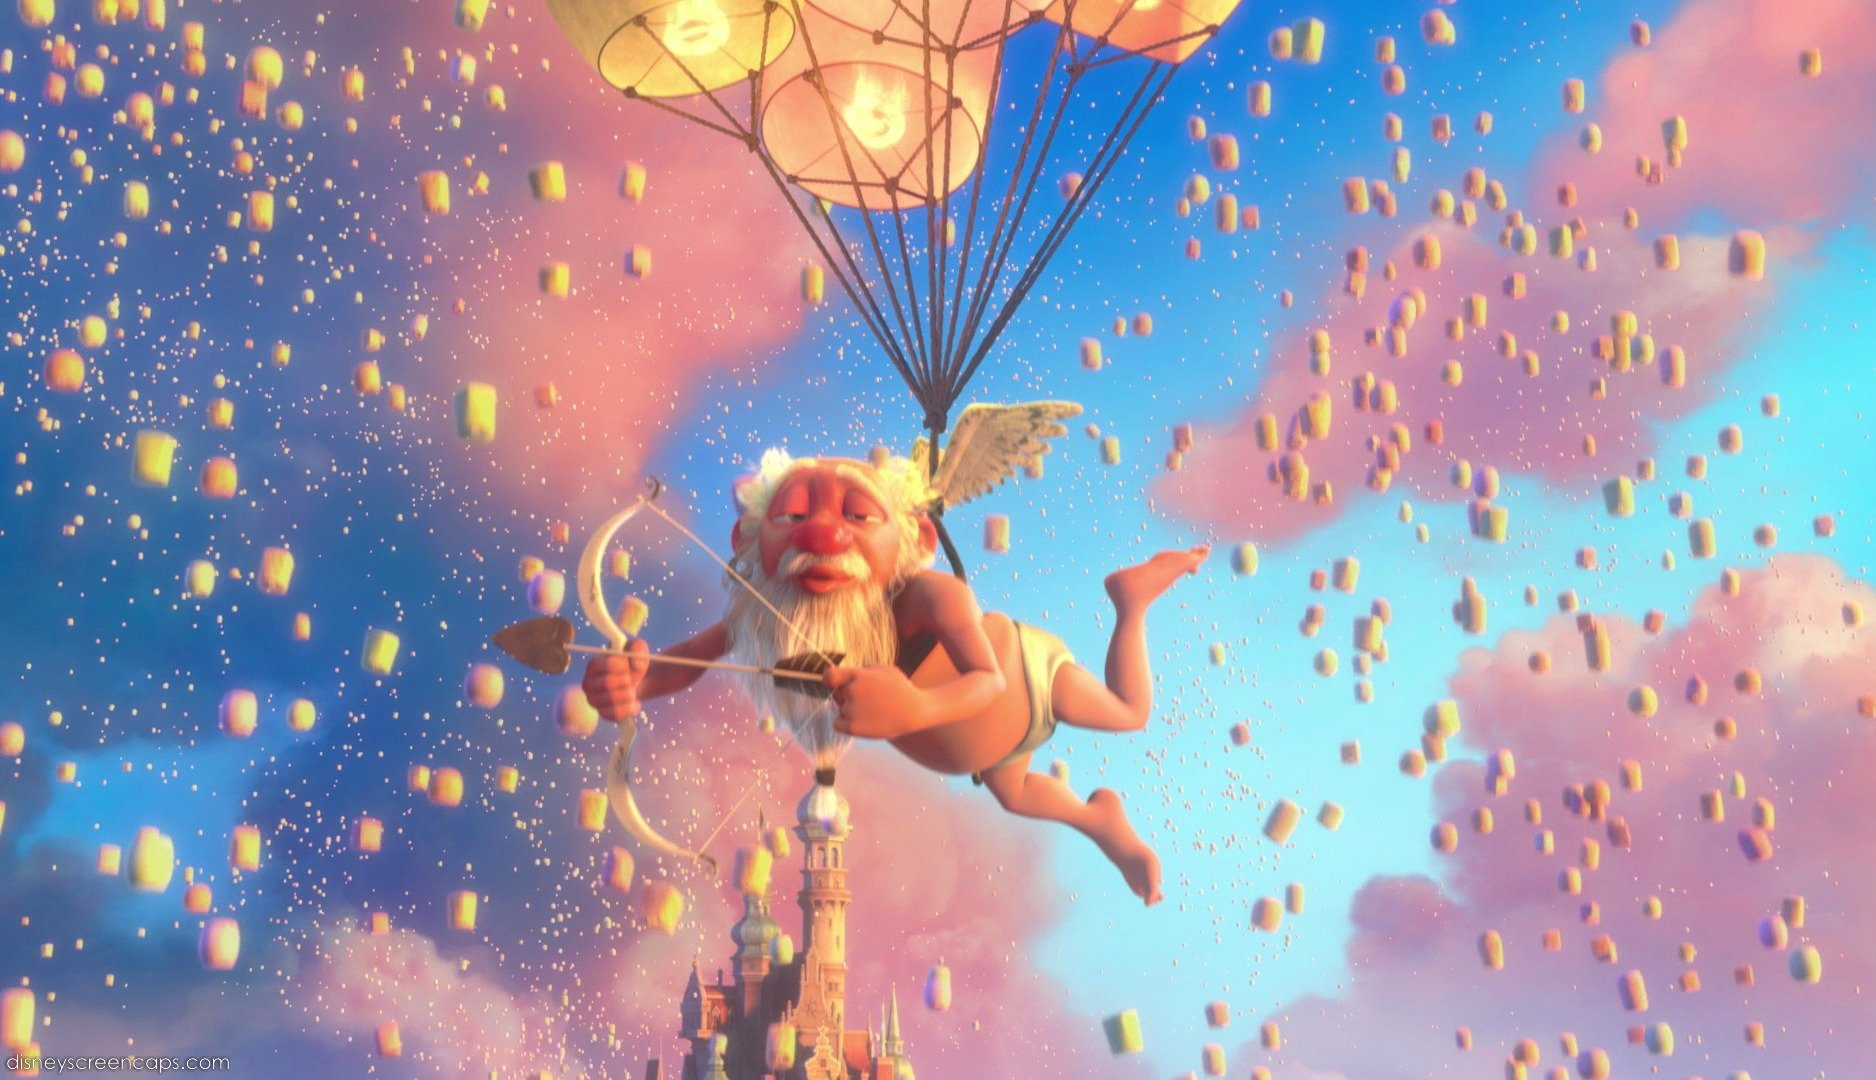 tangled-disneyscreencaps.com-10786.jpg